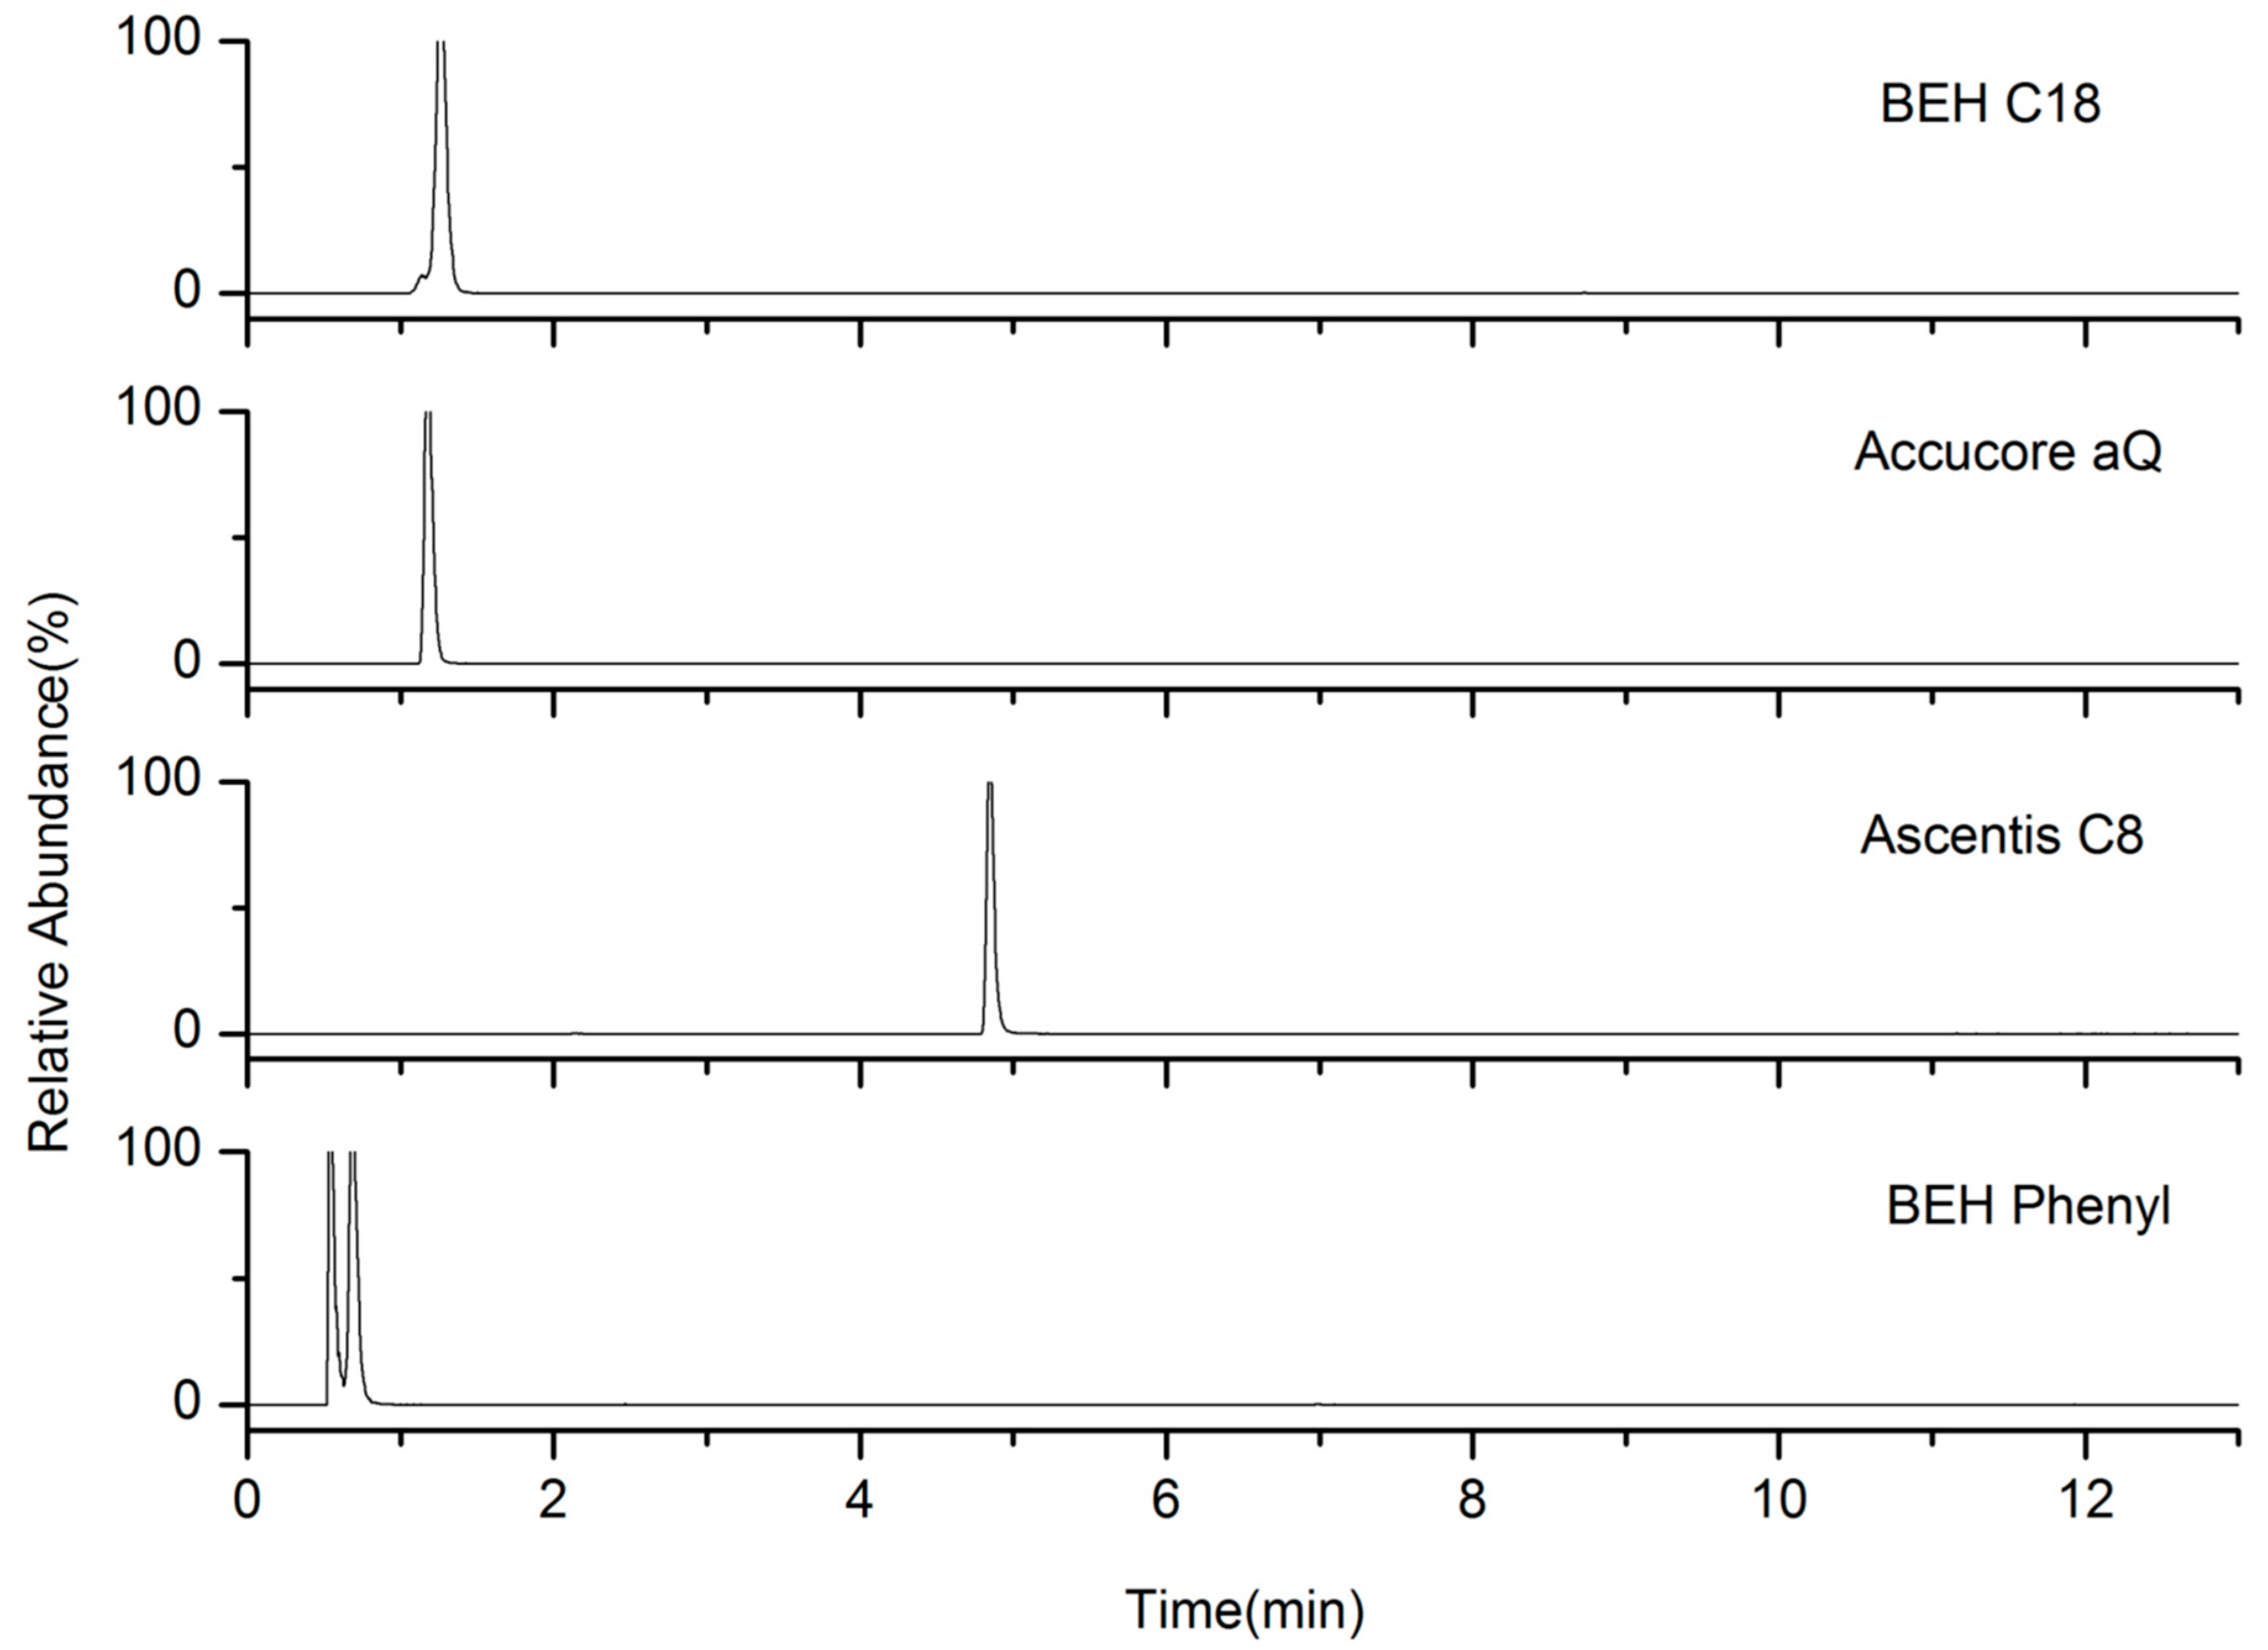 Molecules | Free Full-Text | Analysis of 27 β-Blockers and